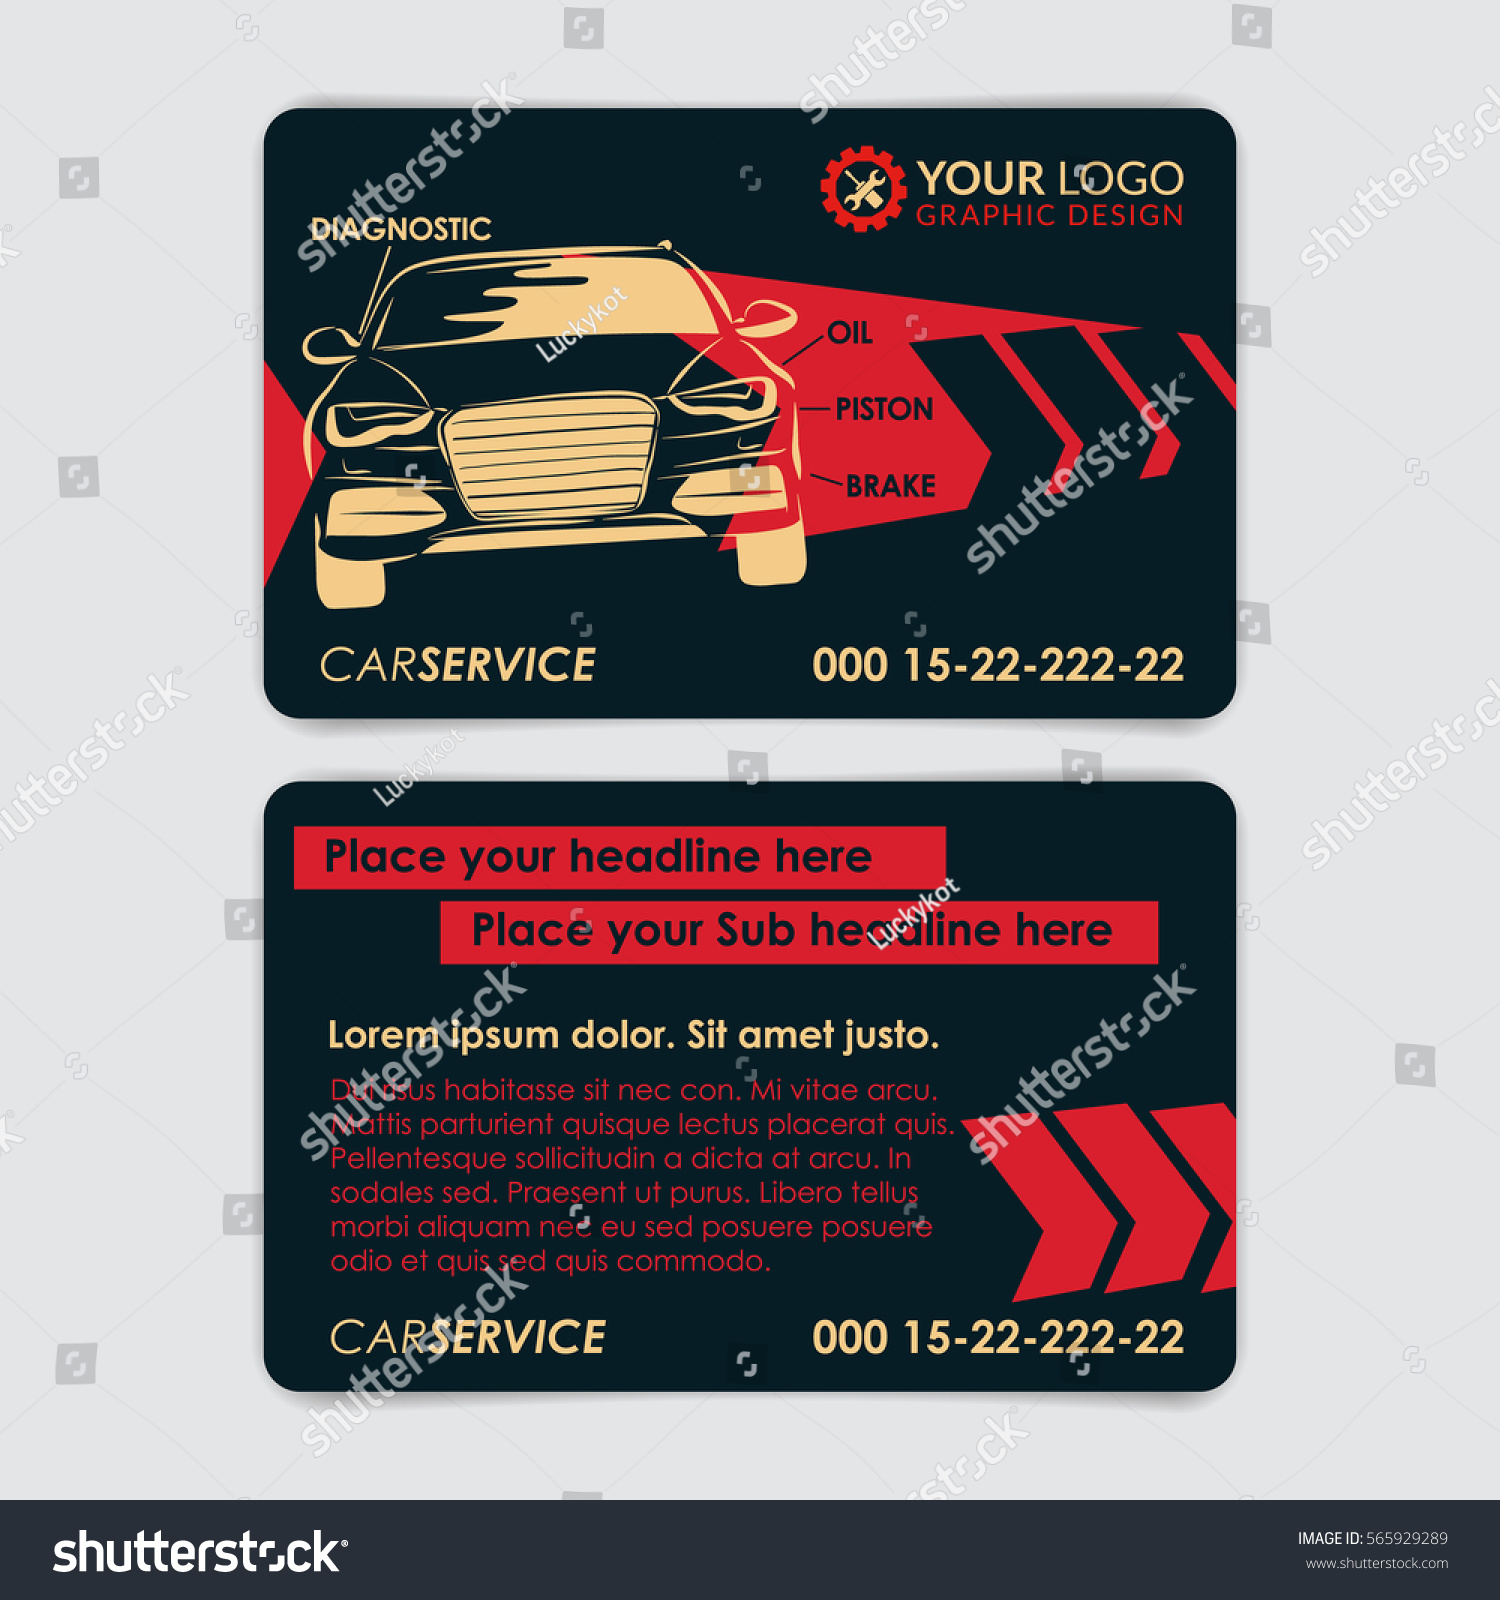 Auto repair business card template create stock vector hd royalty auto repair business card template create your own business cards mockup vector illustration cheaphphosting Images